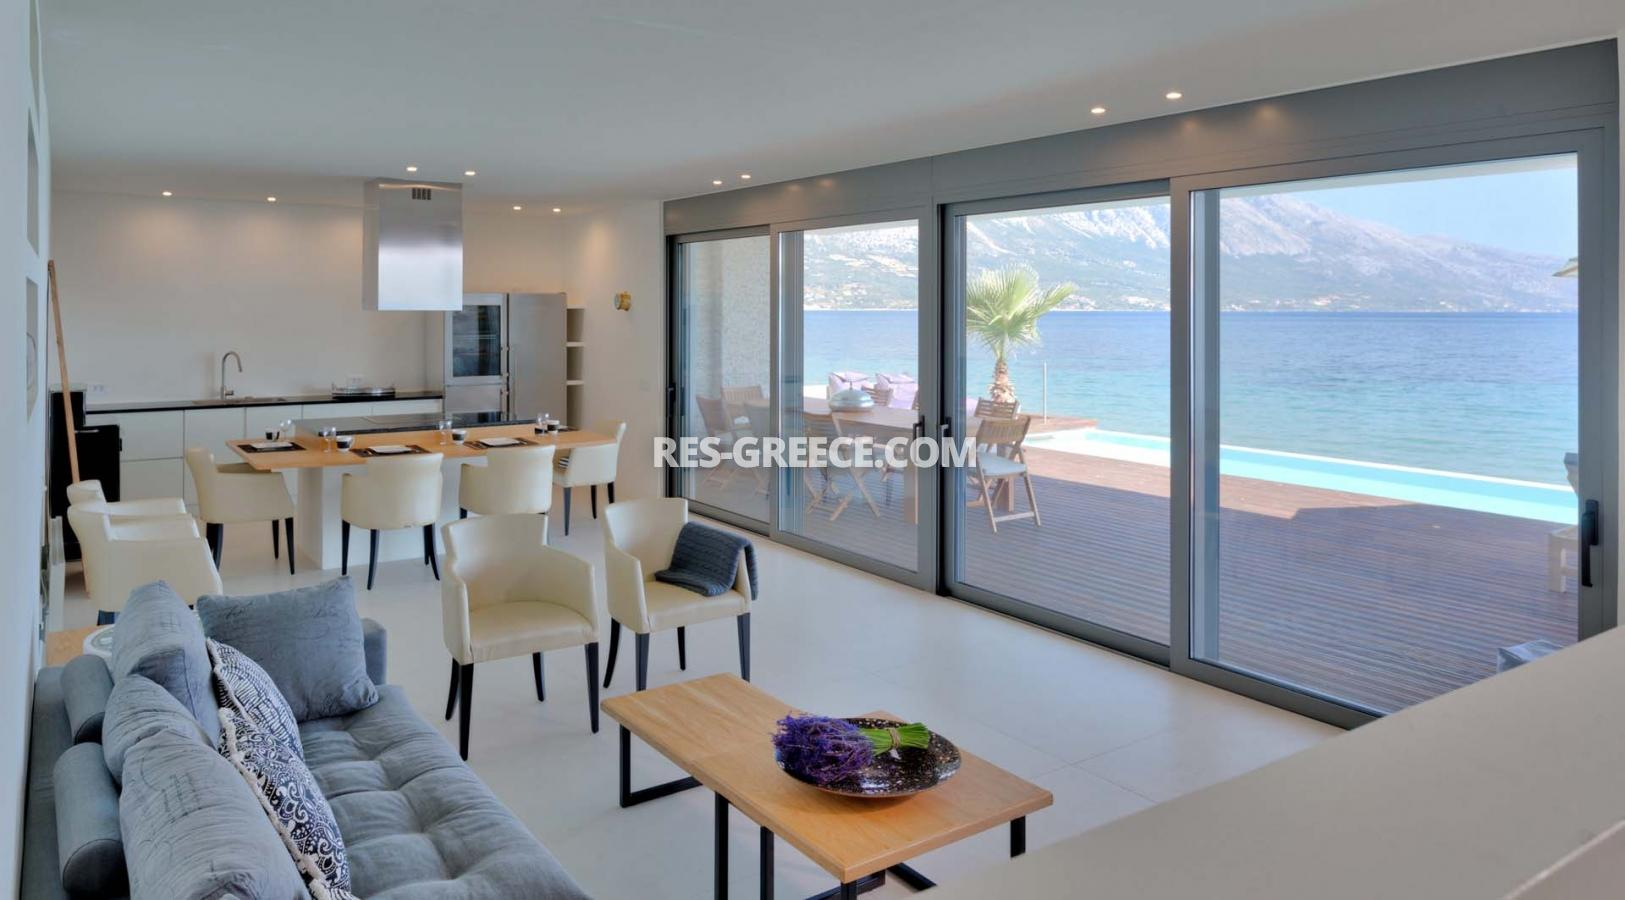 Kastor, Epir, Greece - off-plan villa project first line to the sea - Photo 3